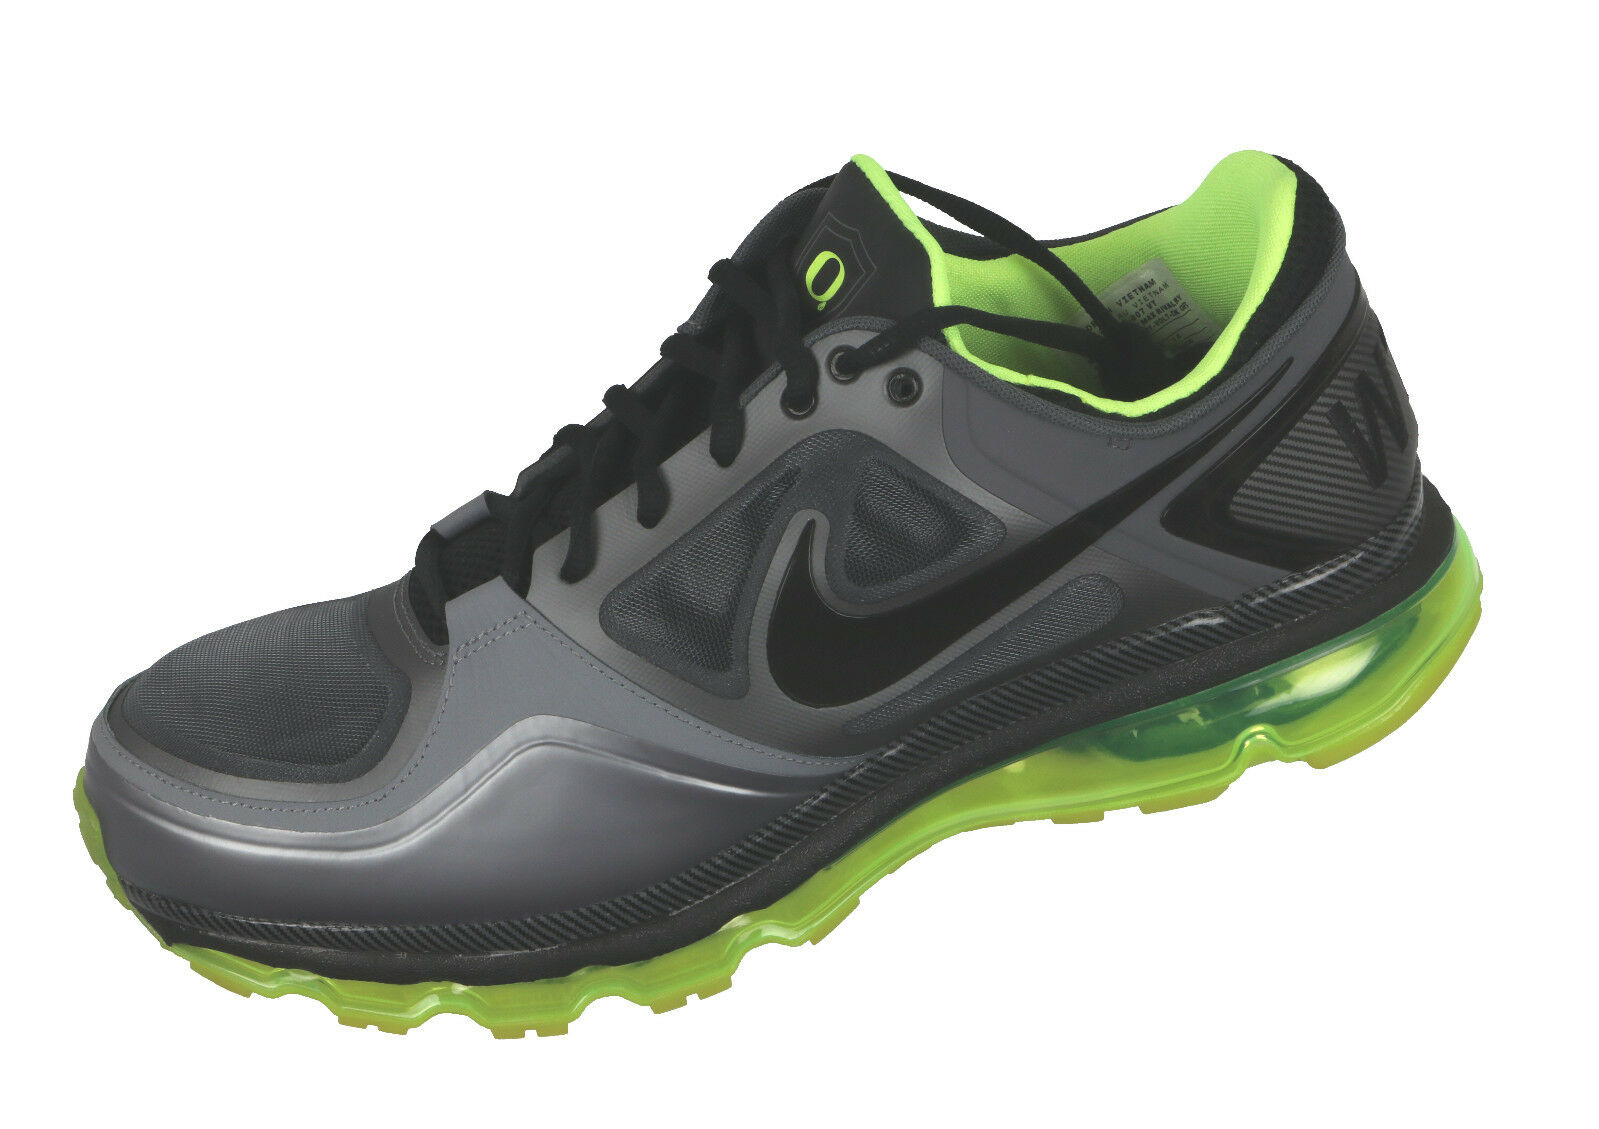 Nike Nike Nike Zapatillas 1.3 Max Rivalry + Oregon Patos Pack Promo Muestra Pe Le 85c7fc